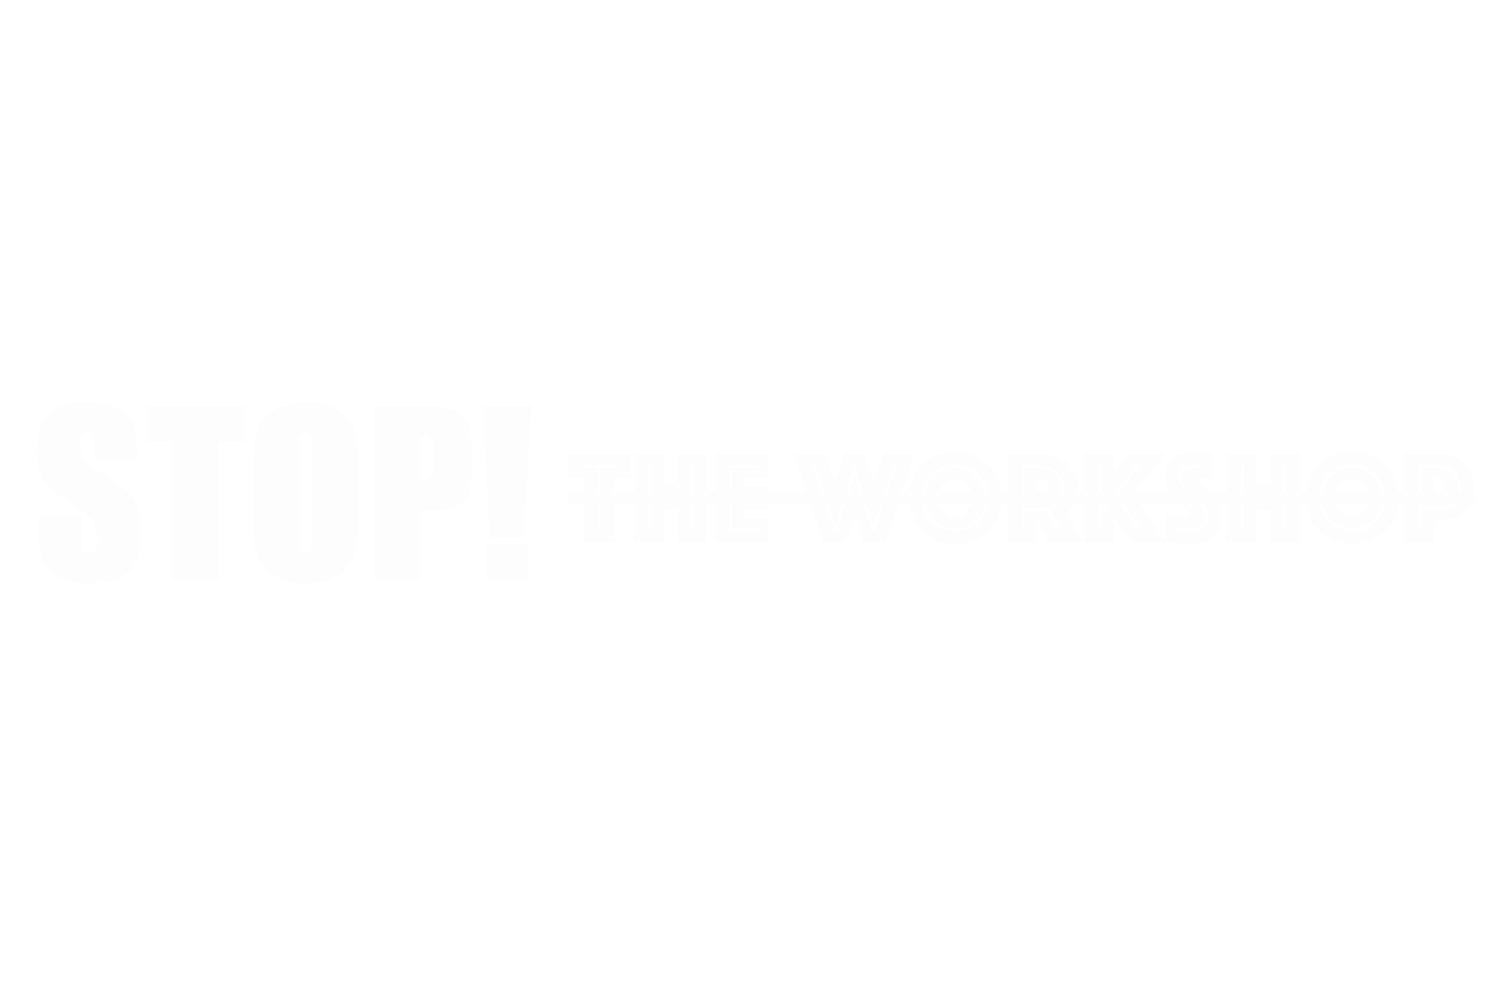 STOP! the workshop